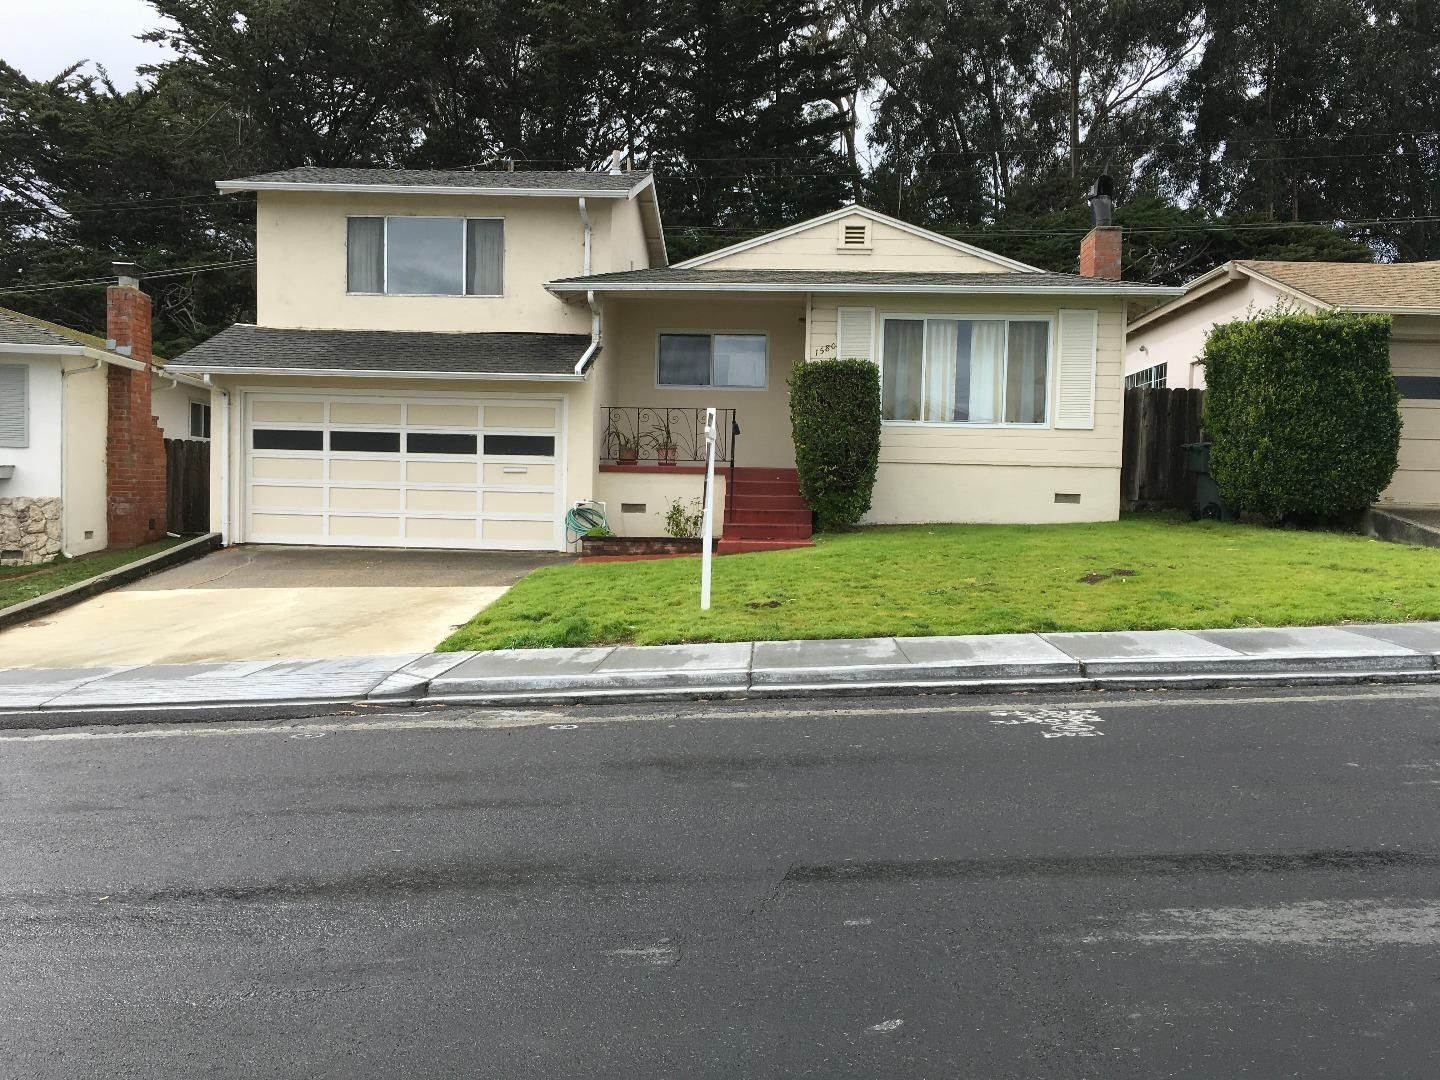 Single Family Home for Sale at 1580 Claremont Drive 1580 Claremont Drive San Bruno, California 94066 United States